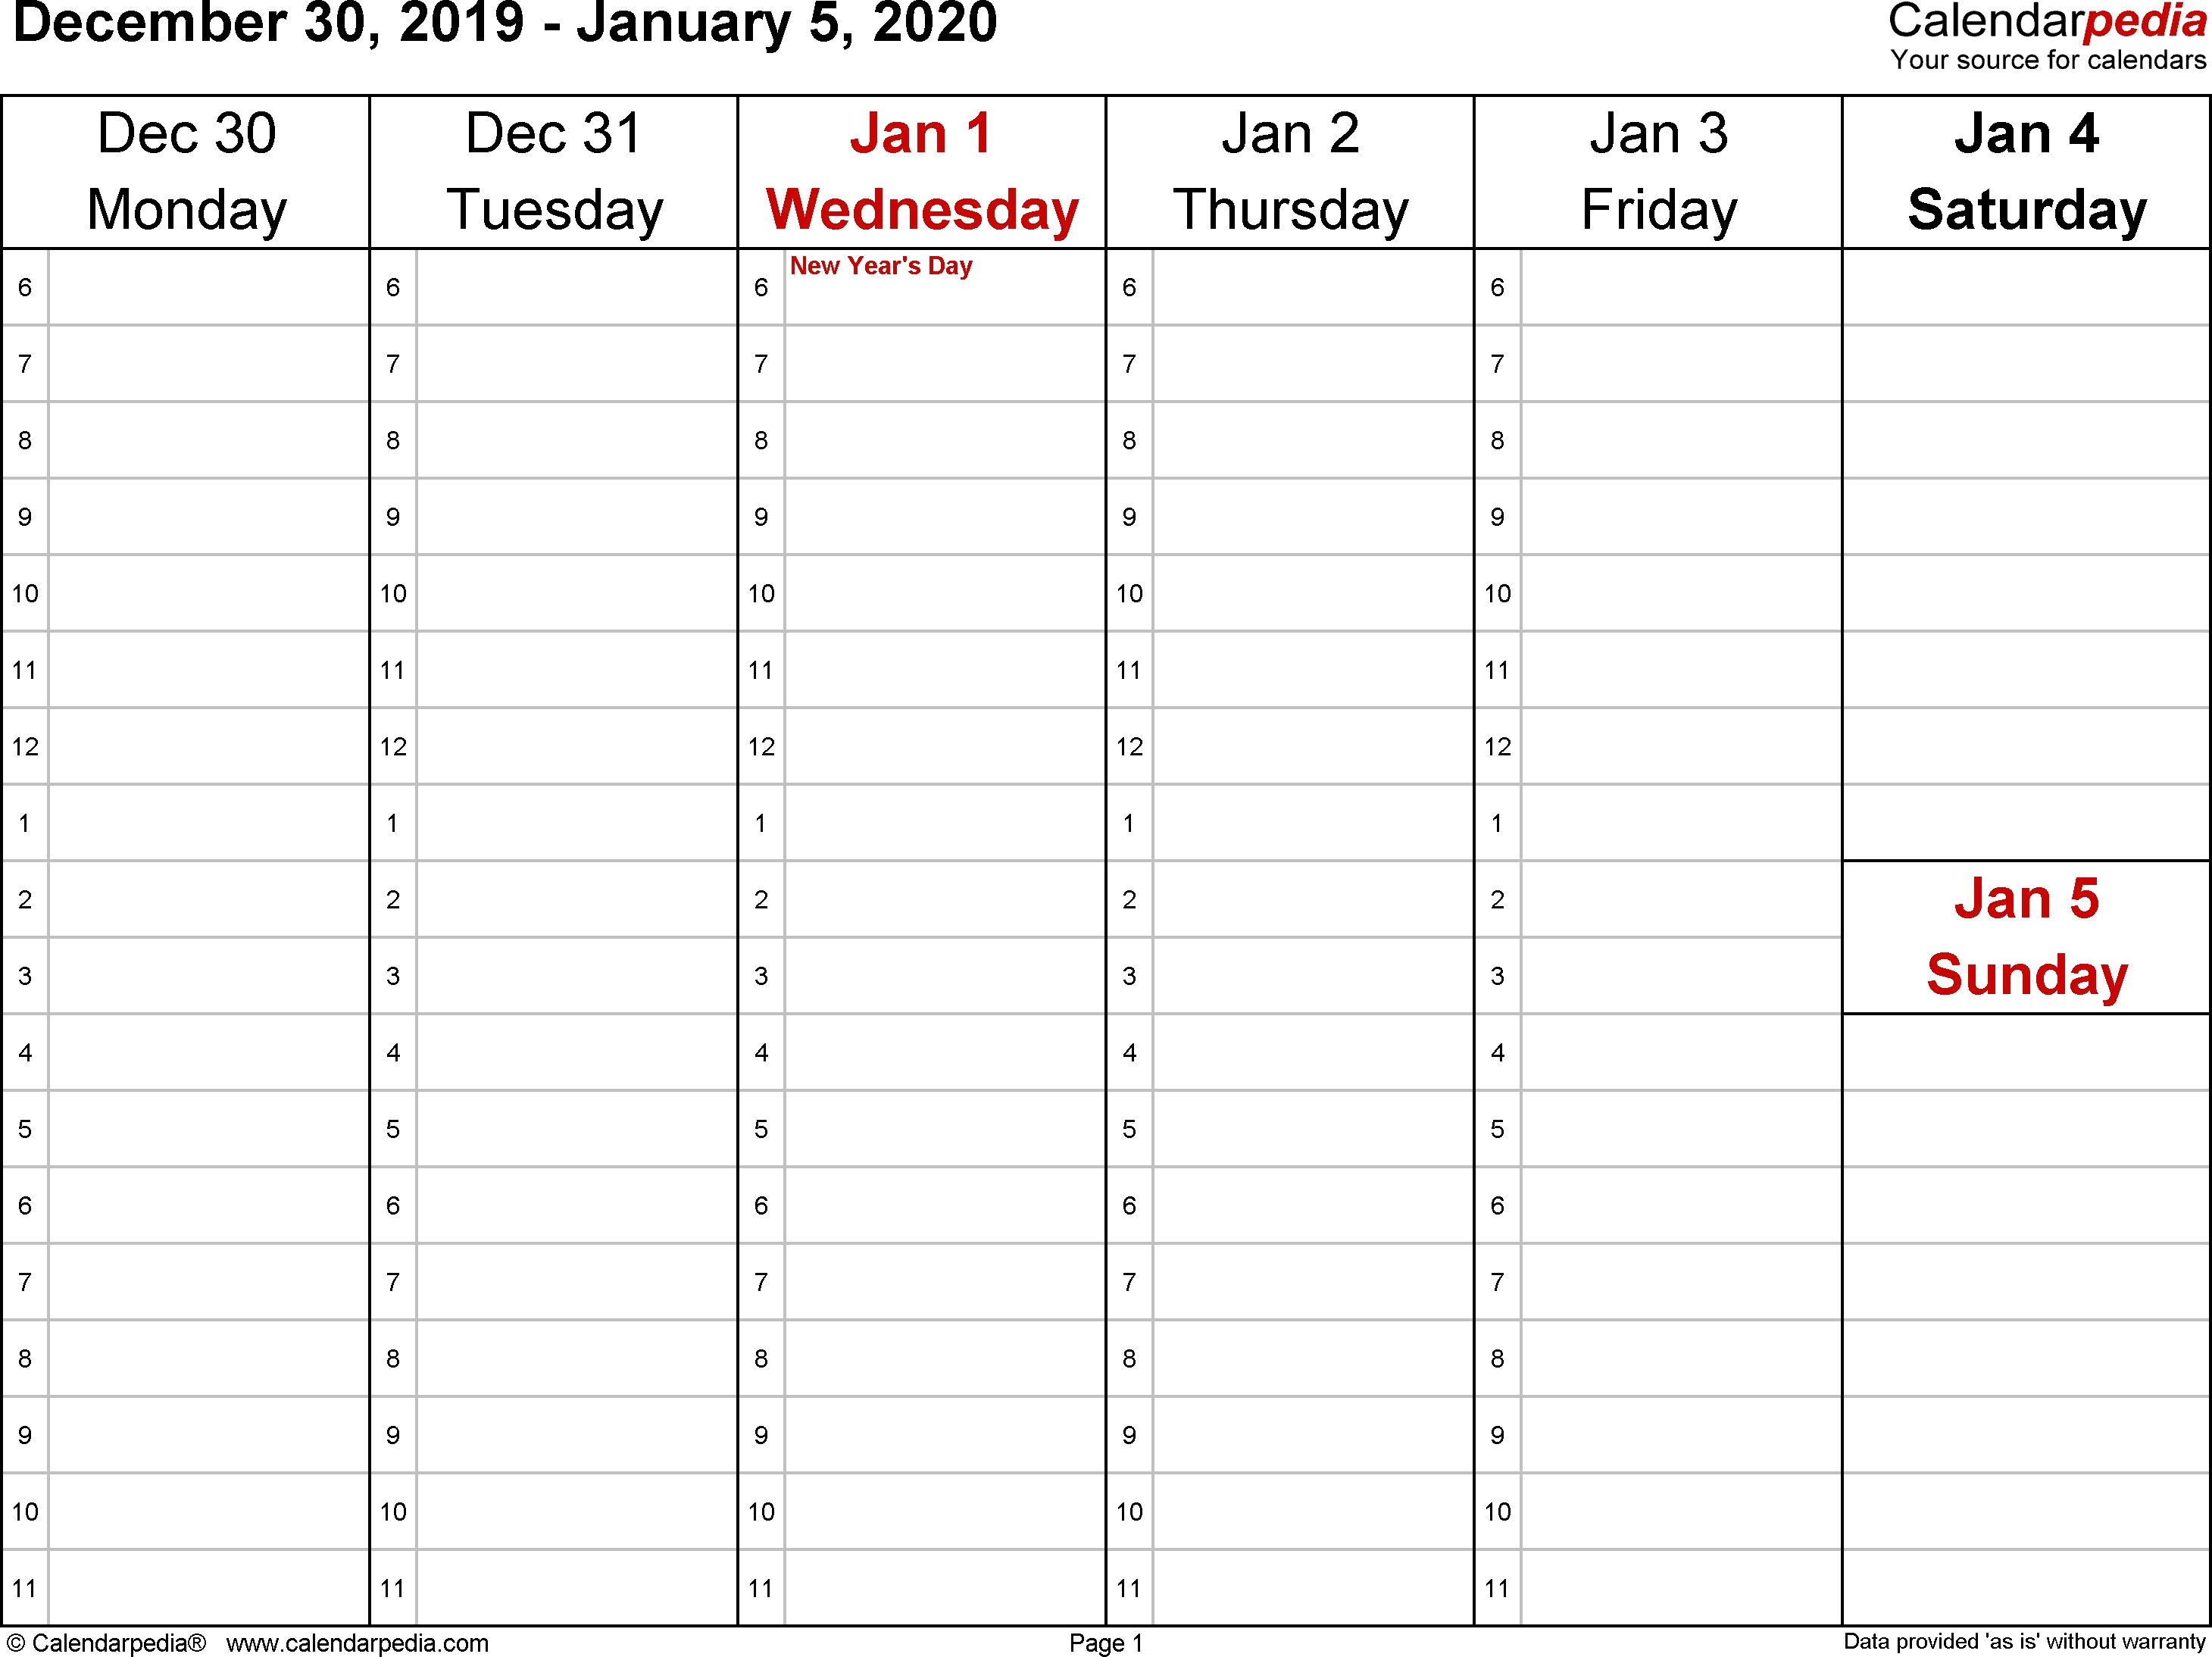 Weekly Calendar 2020 For Word - 12 Free Printable Templates with regard to Printable Calendar One Week Per Page 2020